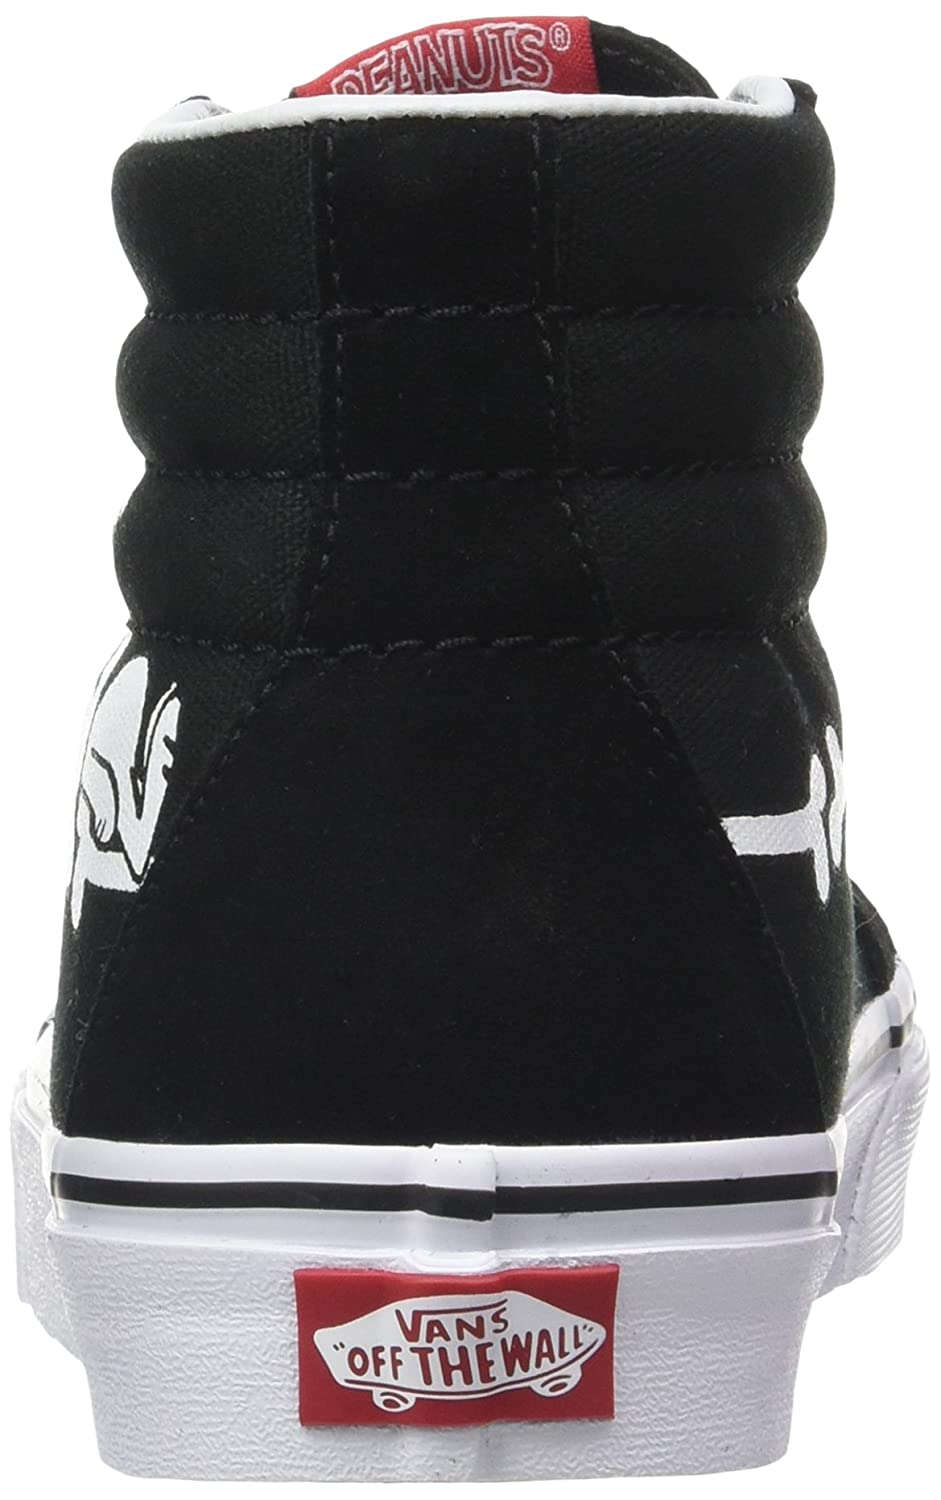 c2b2c9b5cf Vans Unisex Adults  Peanuts Sk8-hi Reissue Trainers  Amazon.co.uk  Shoes    Bags